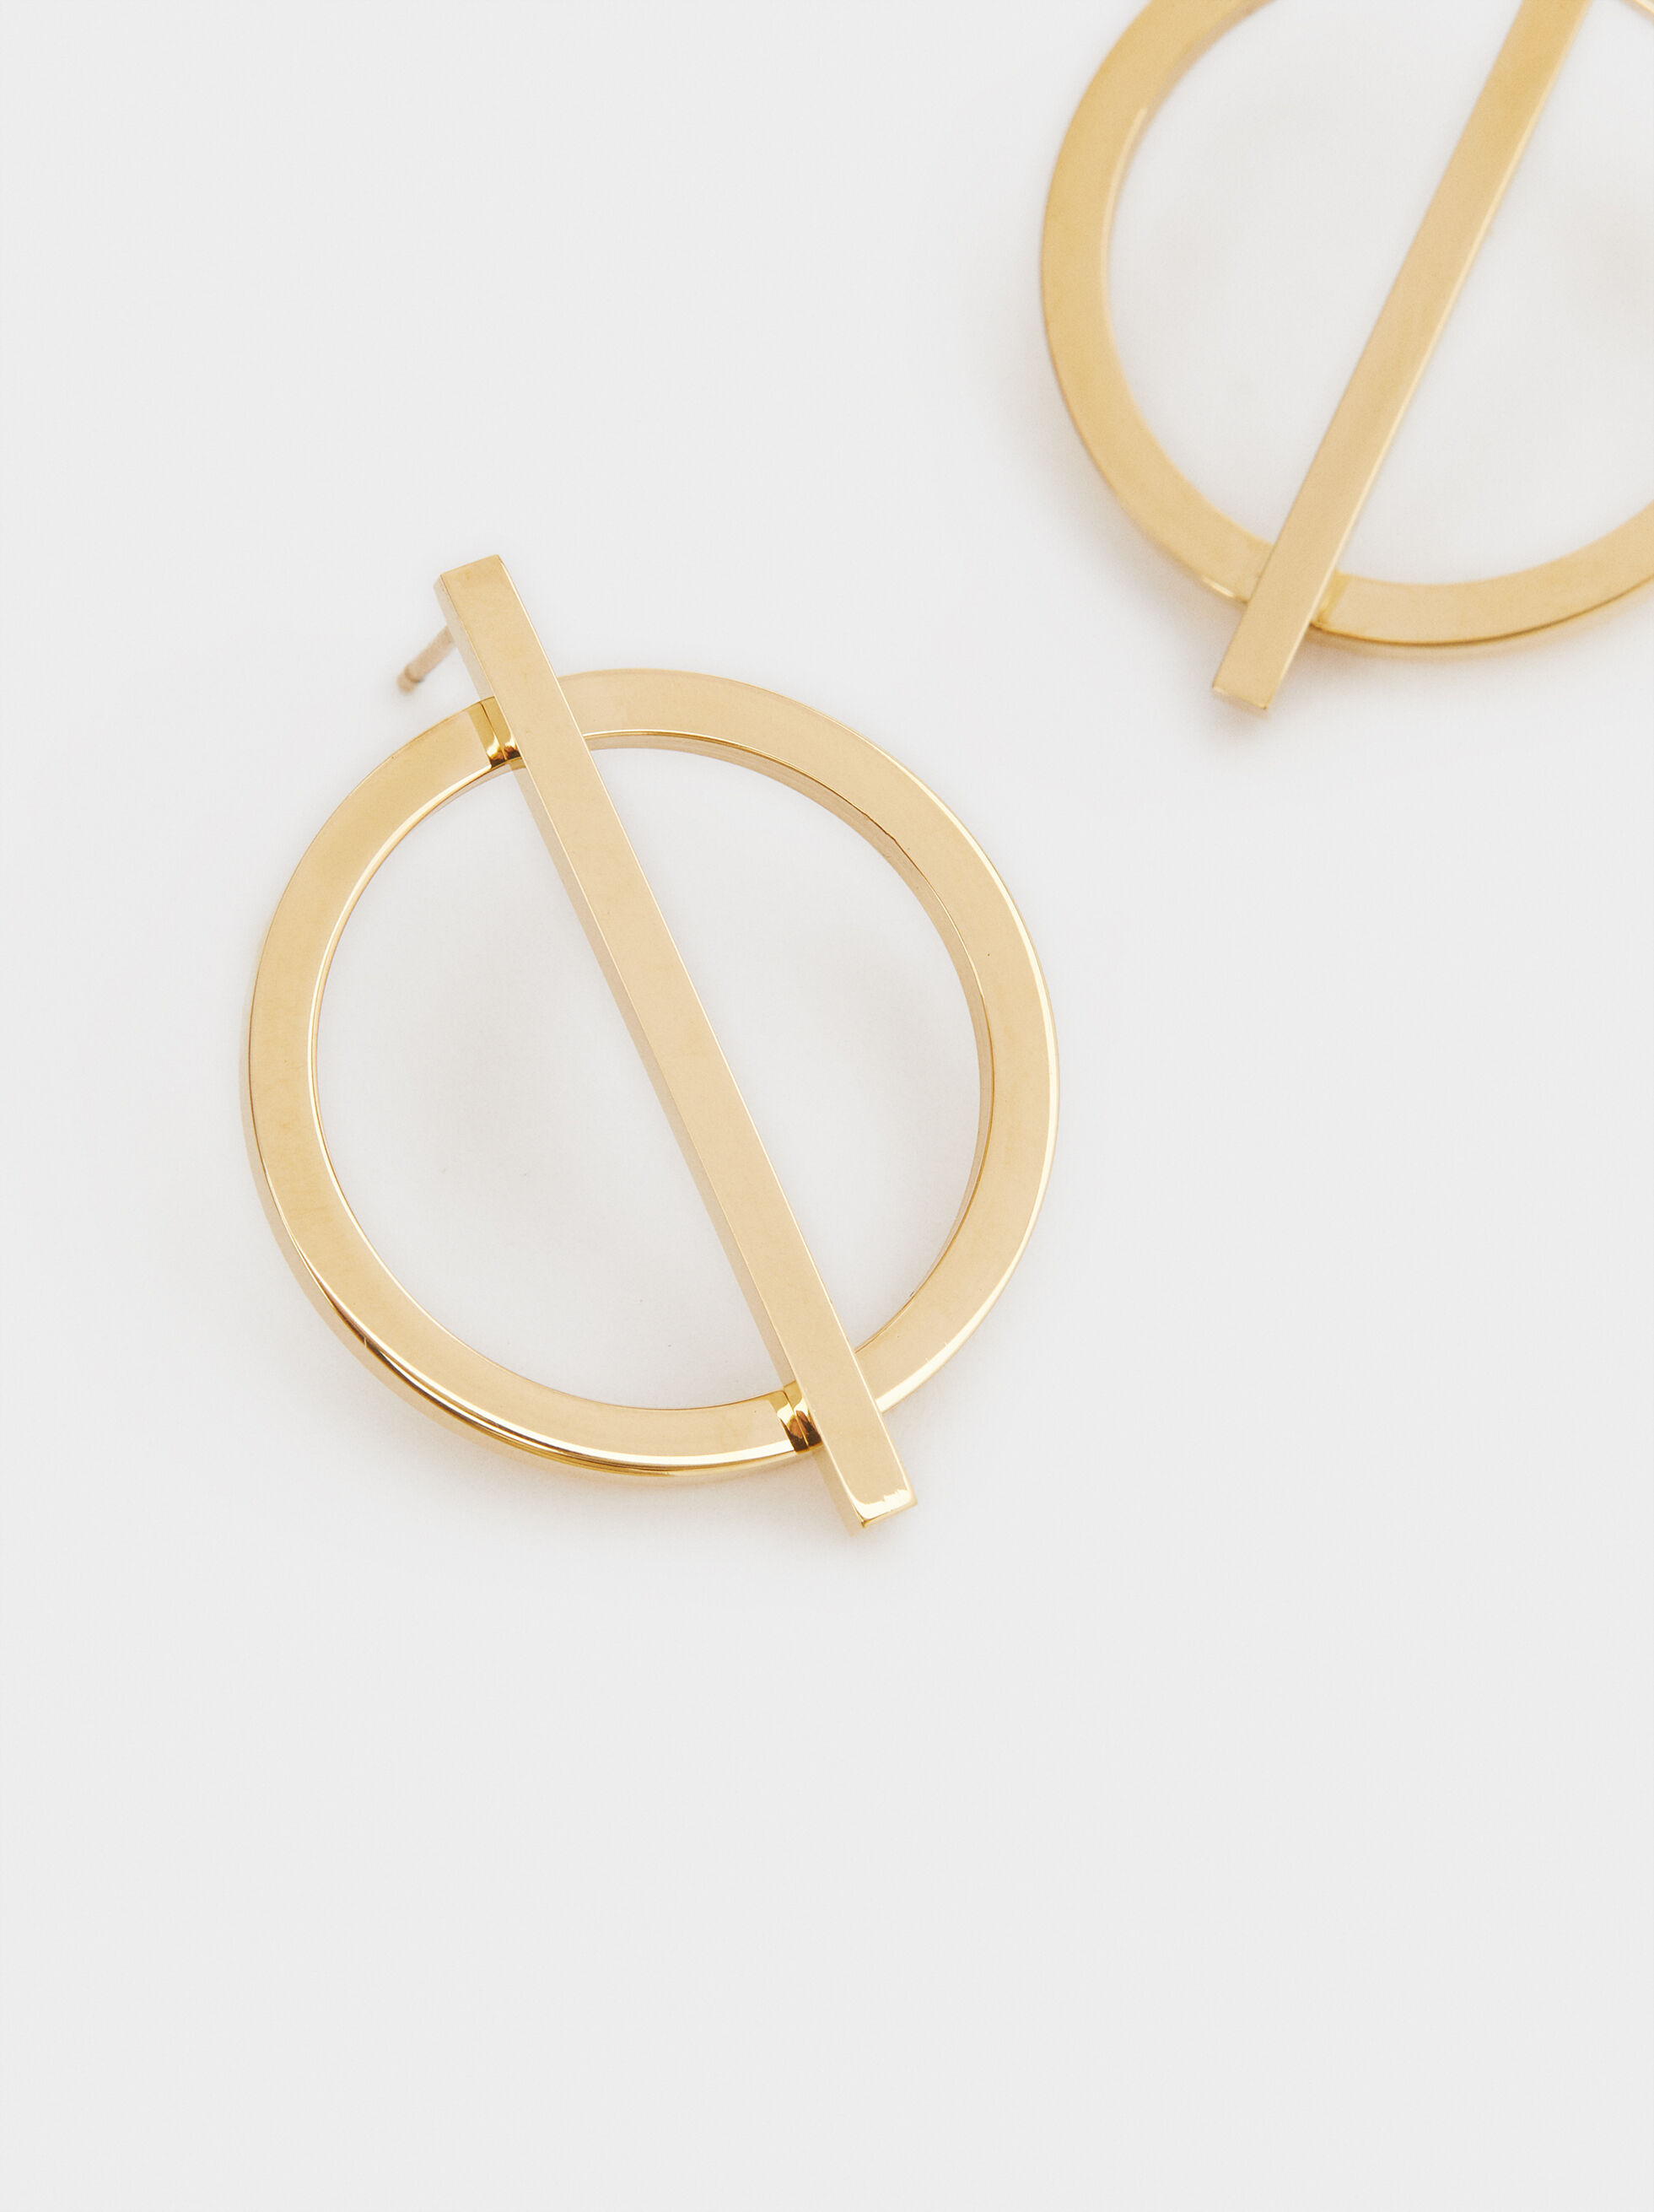 Circular Steel Short Earrings, Golden, hi-res